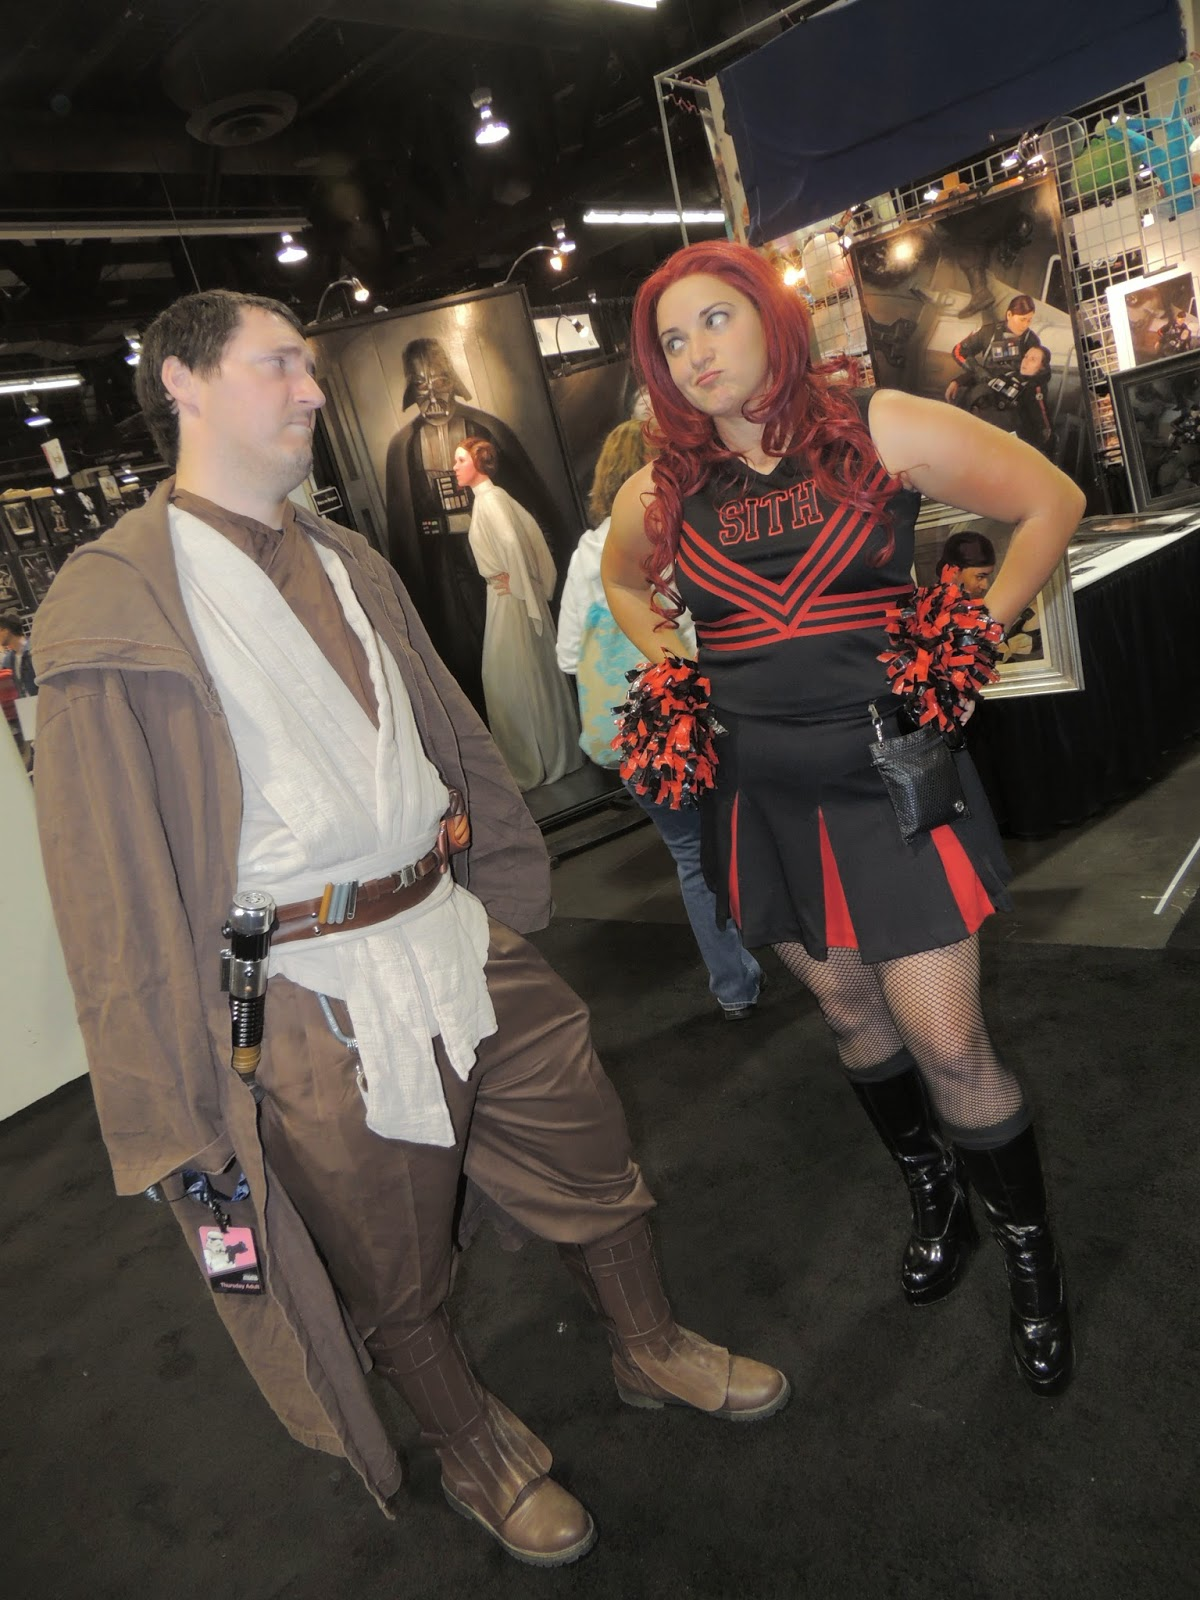 jedi-sith-cheerleader-star-wars-celebration-anaheim